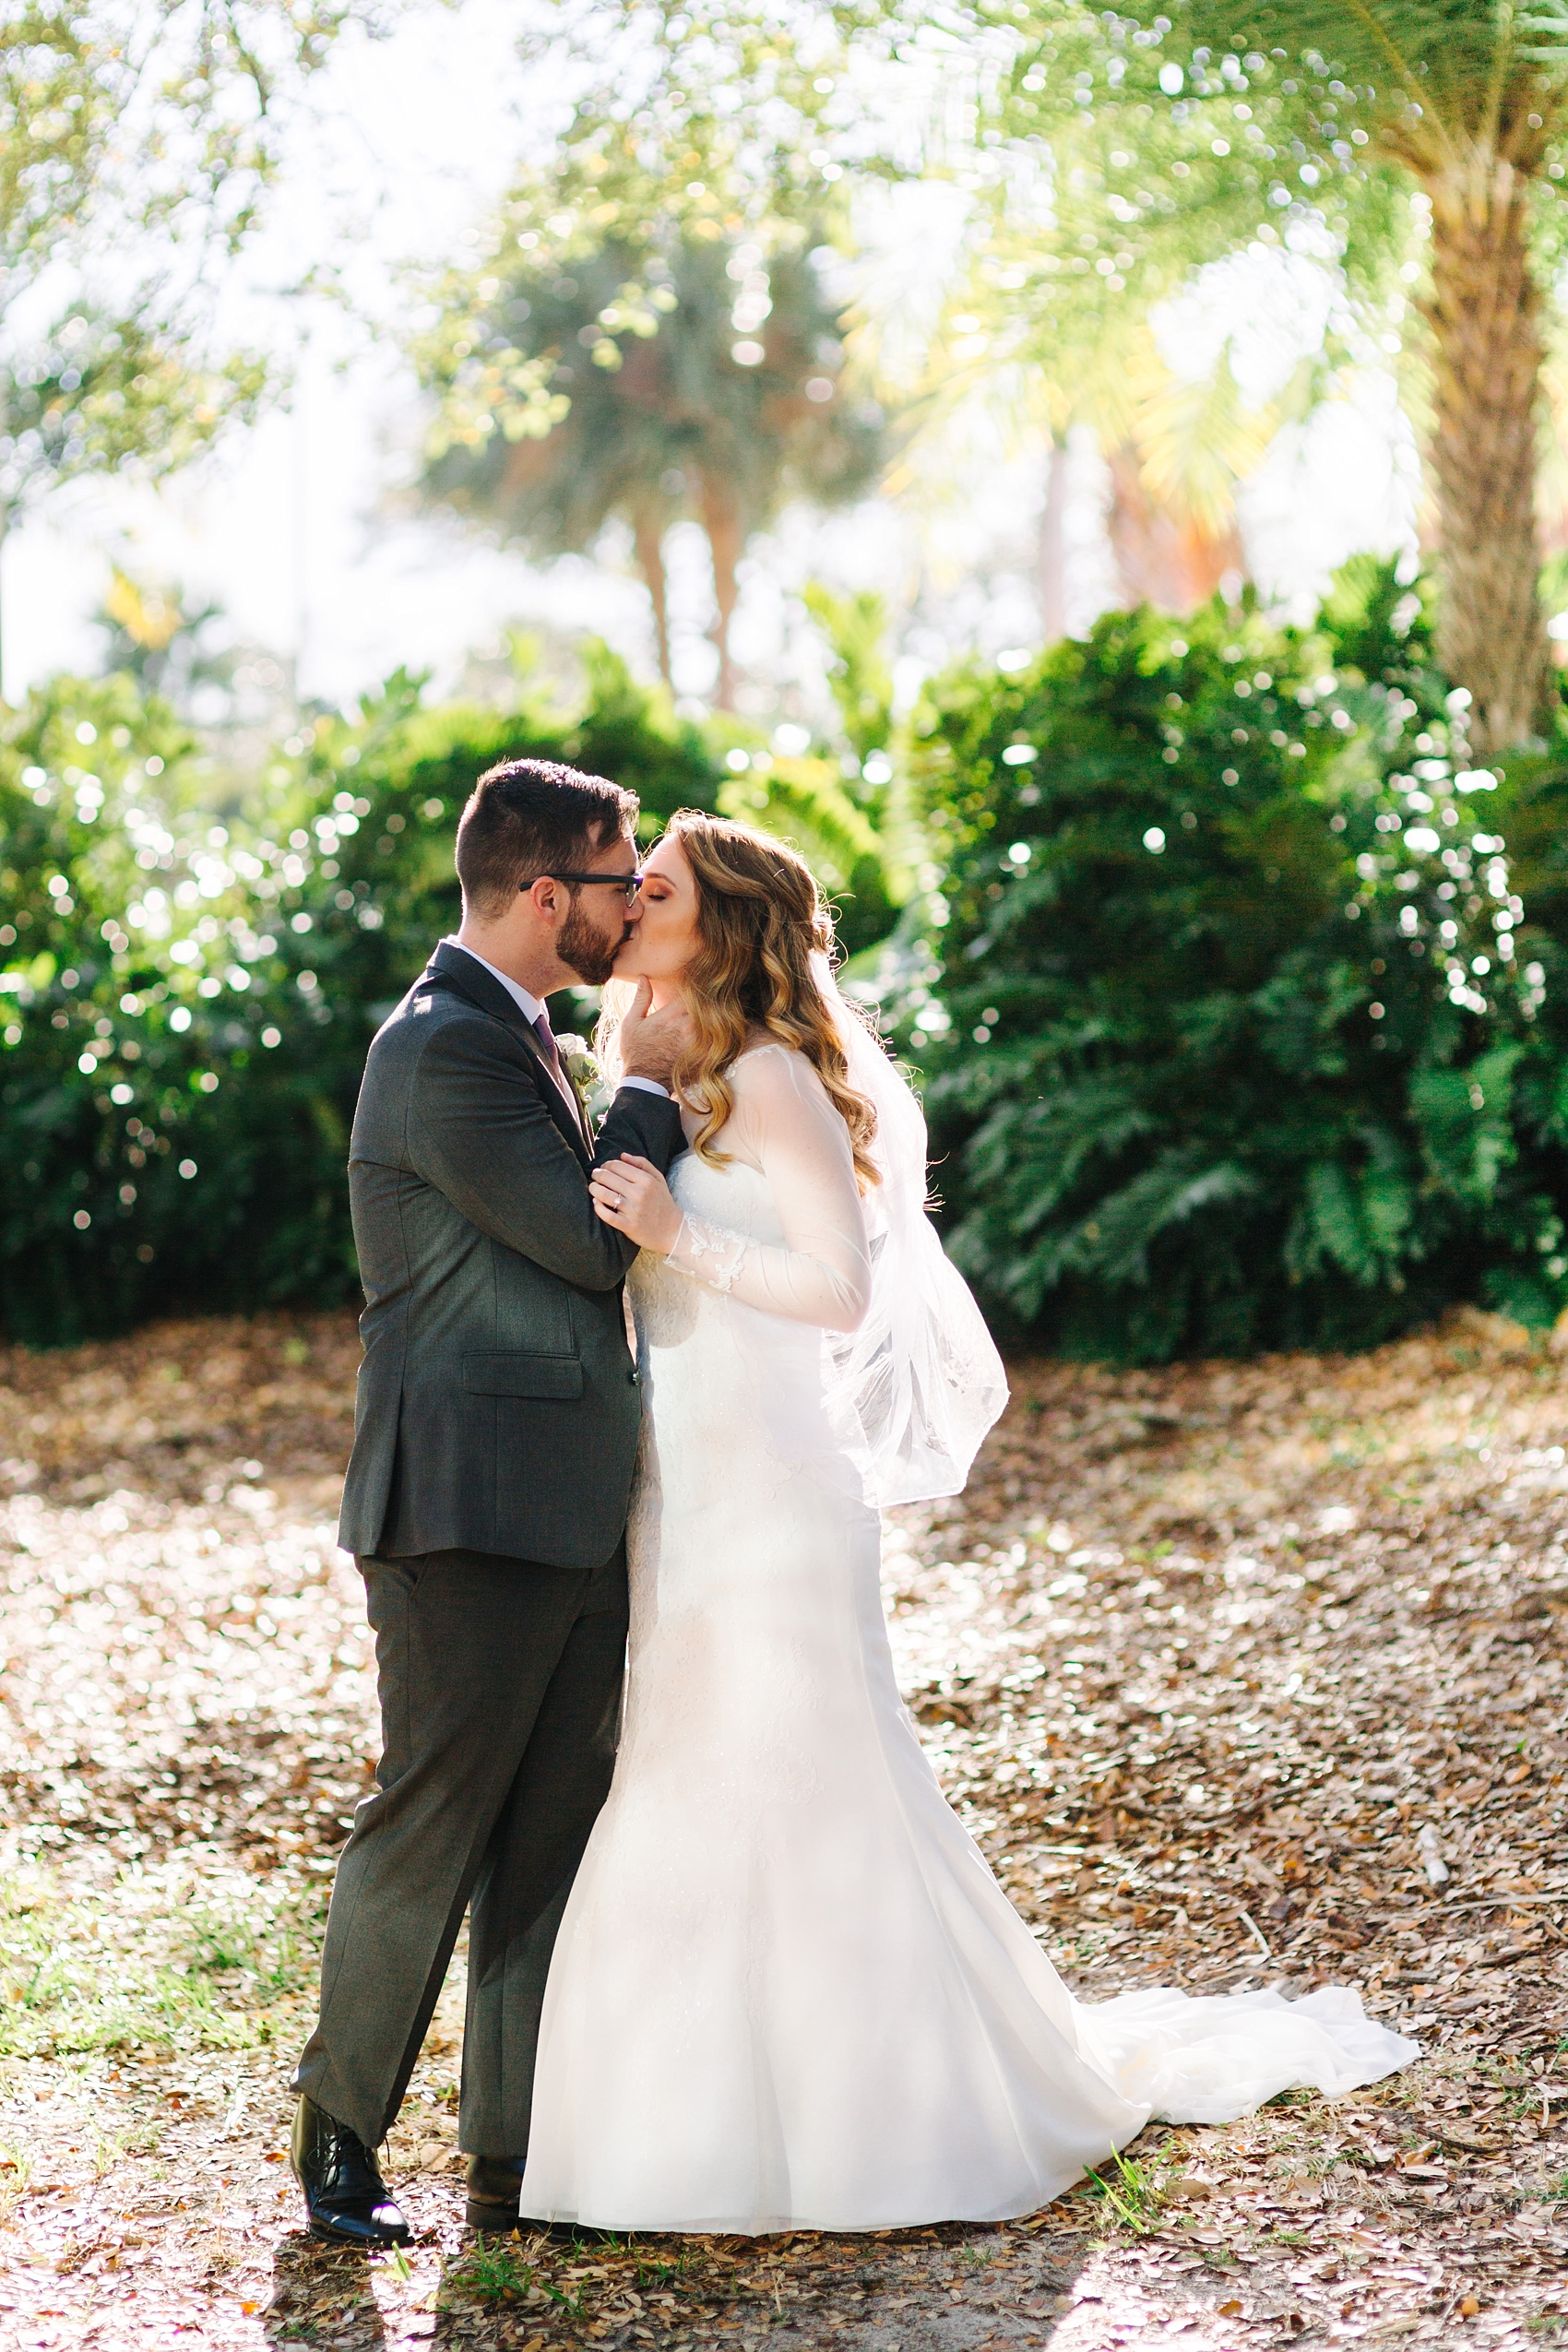 Tampa Wedding Photography by Jake & Katie Photography | Danny & Lauren's Rusty Pelican Wedding